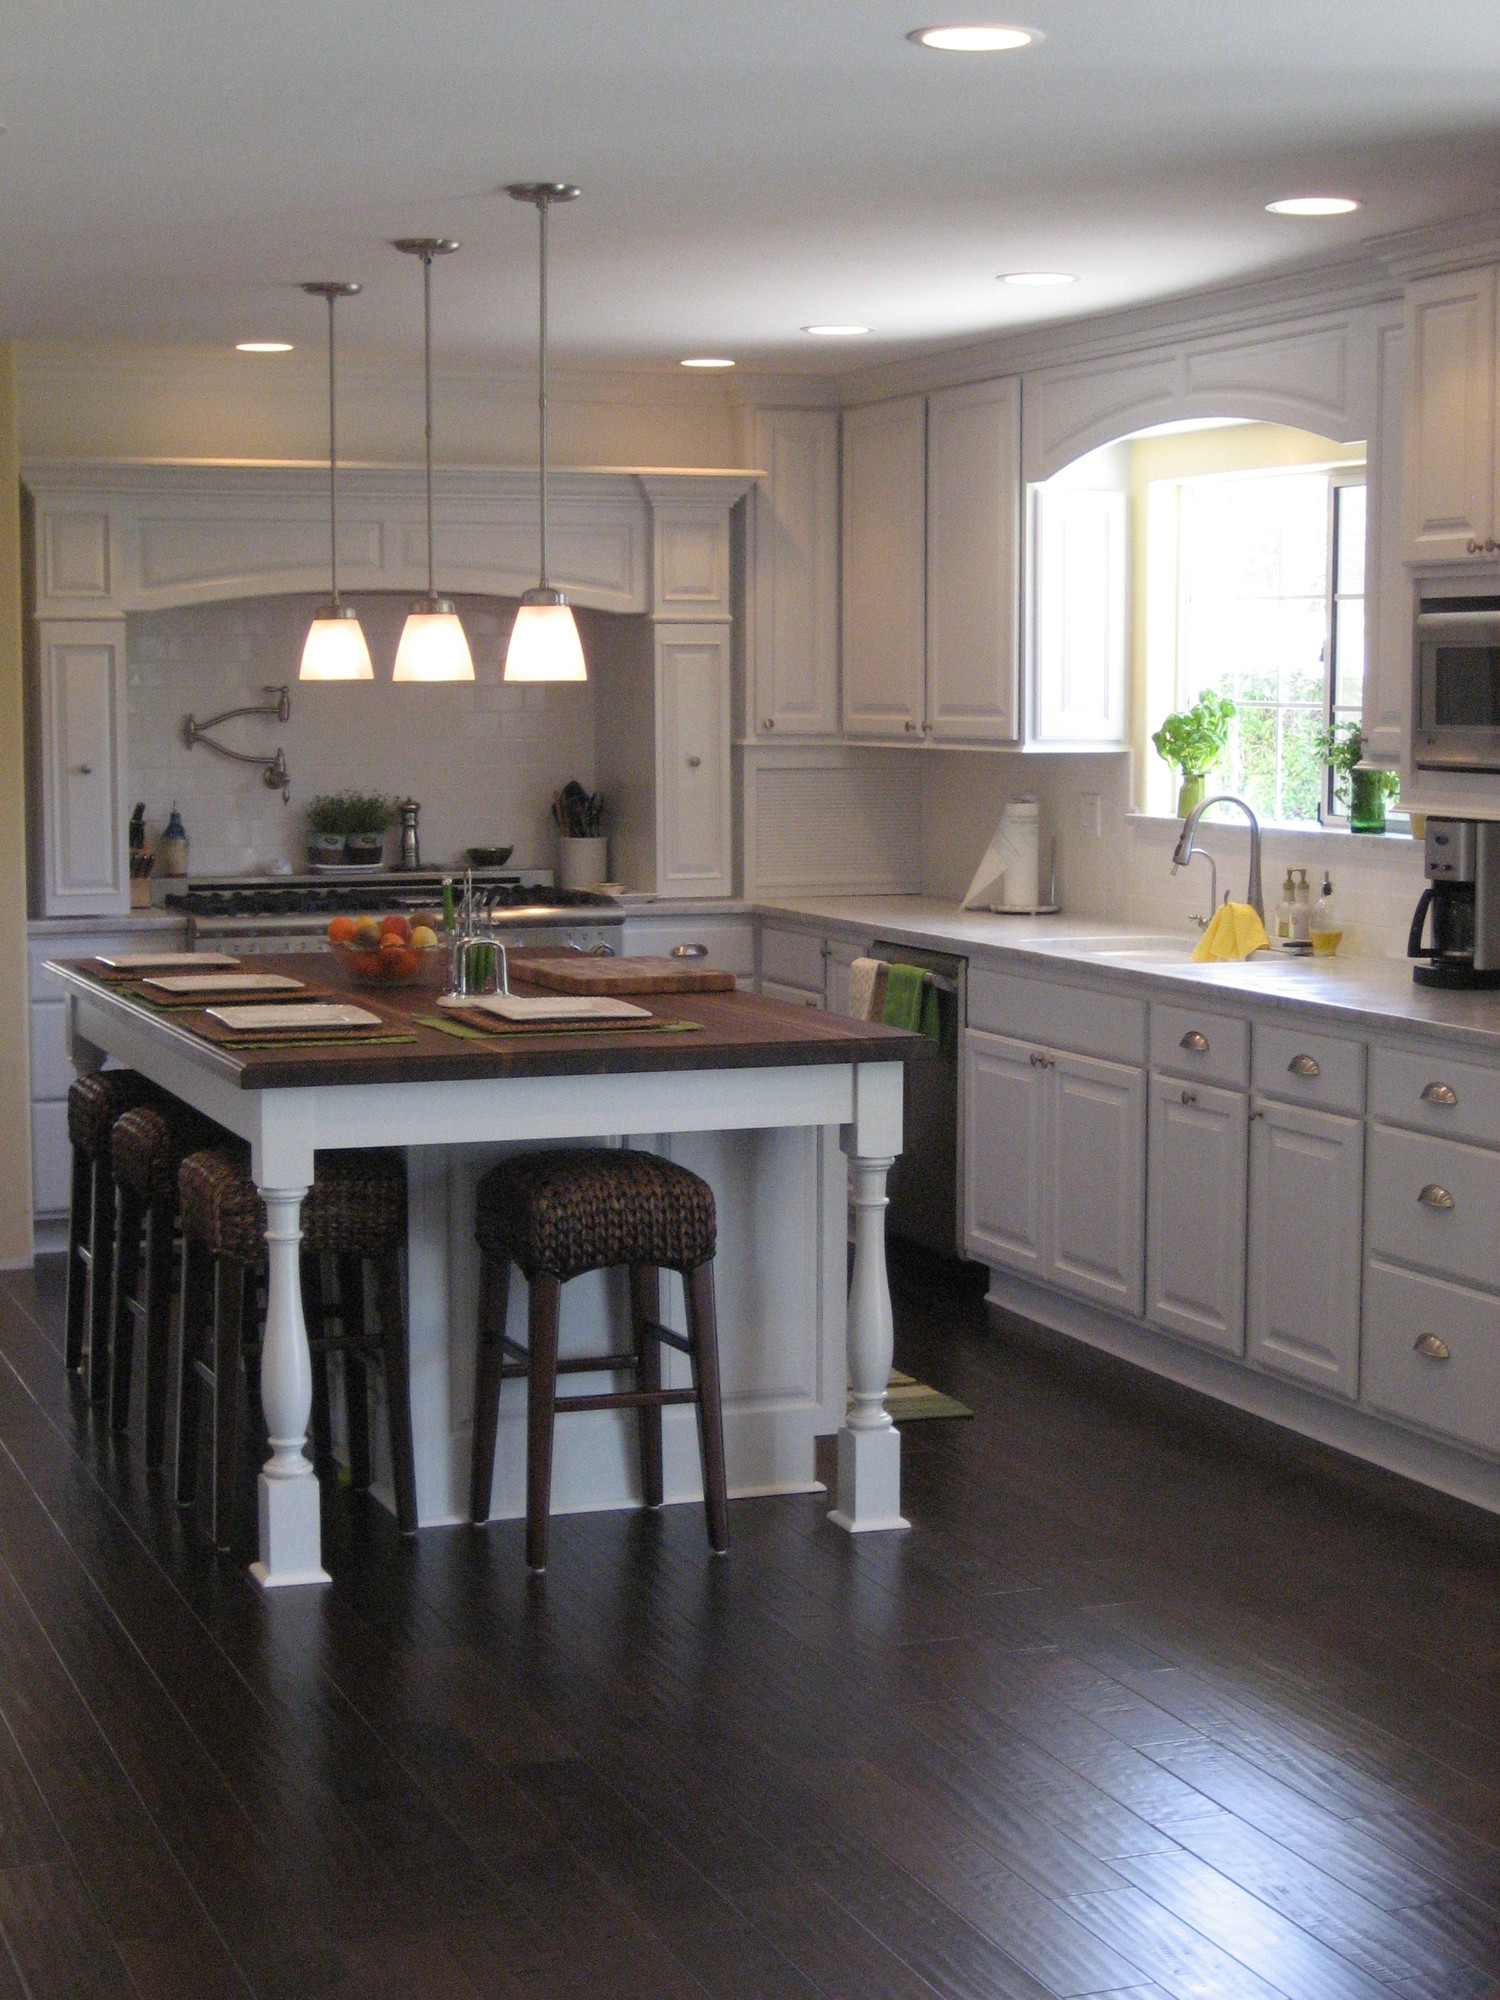 Carter-New-Life-Bath-And-Kitchen-Orcutt-5.jpg